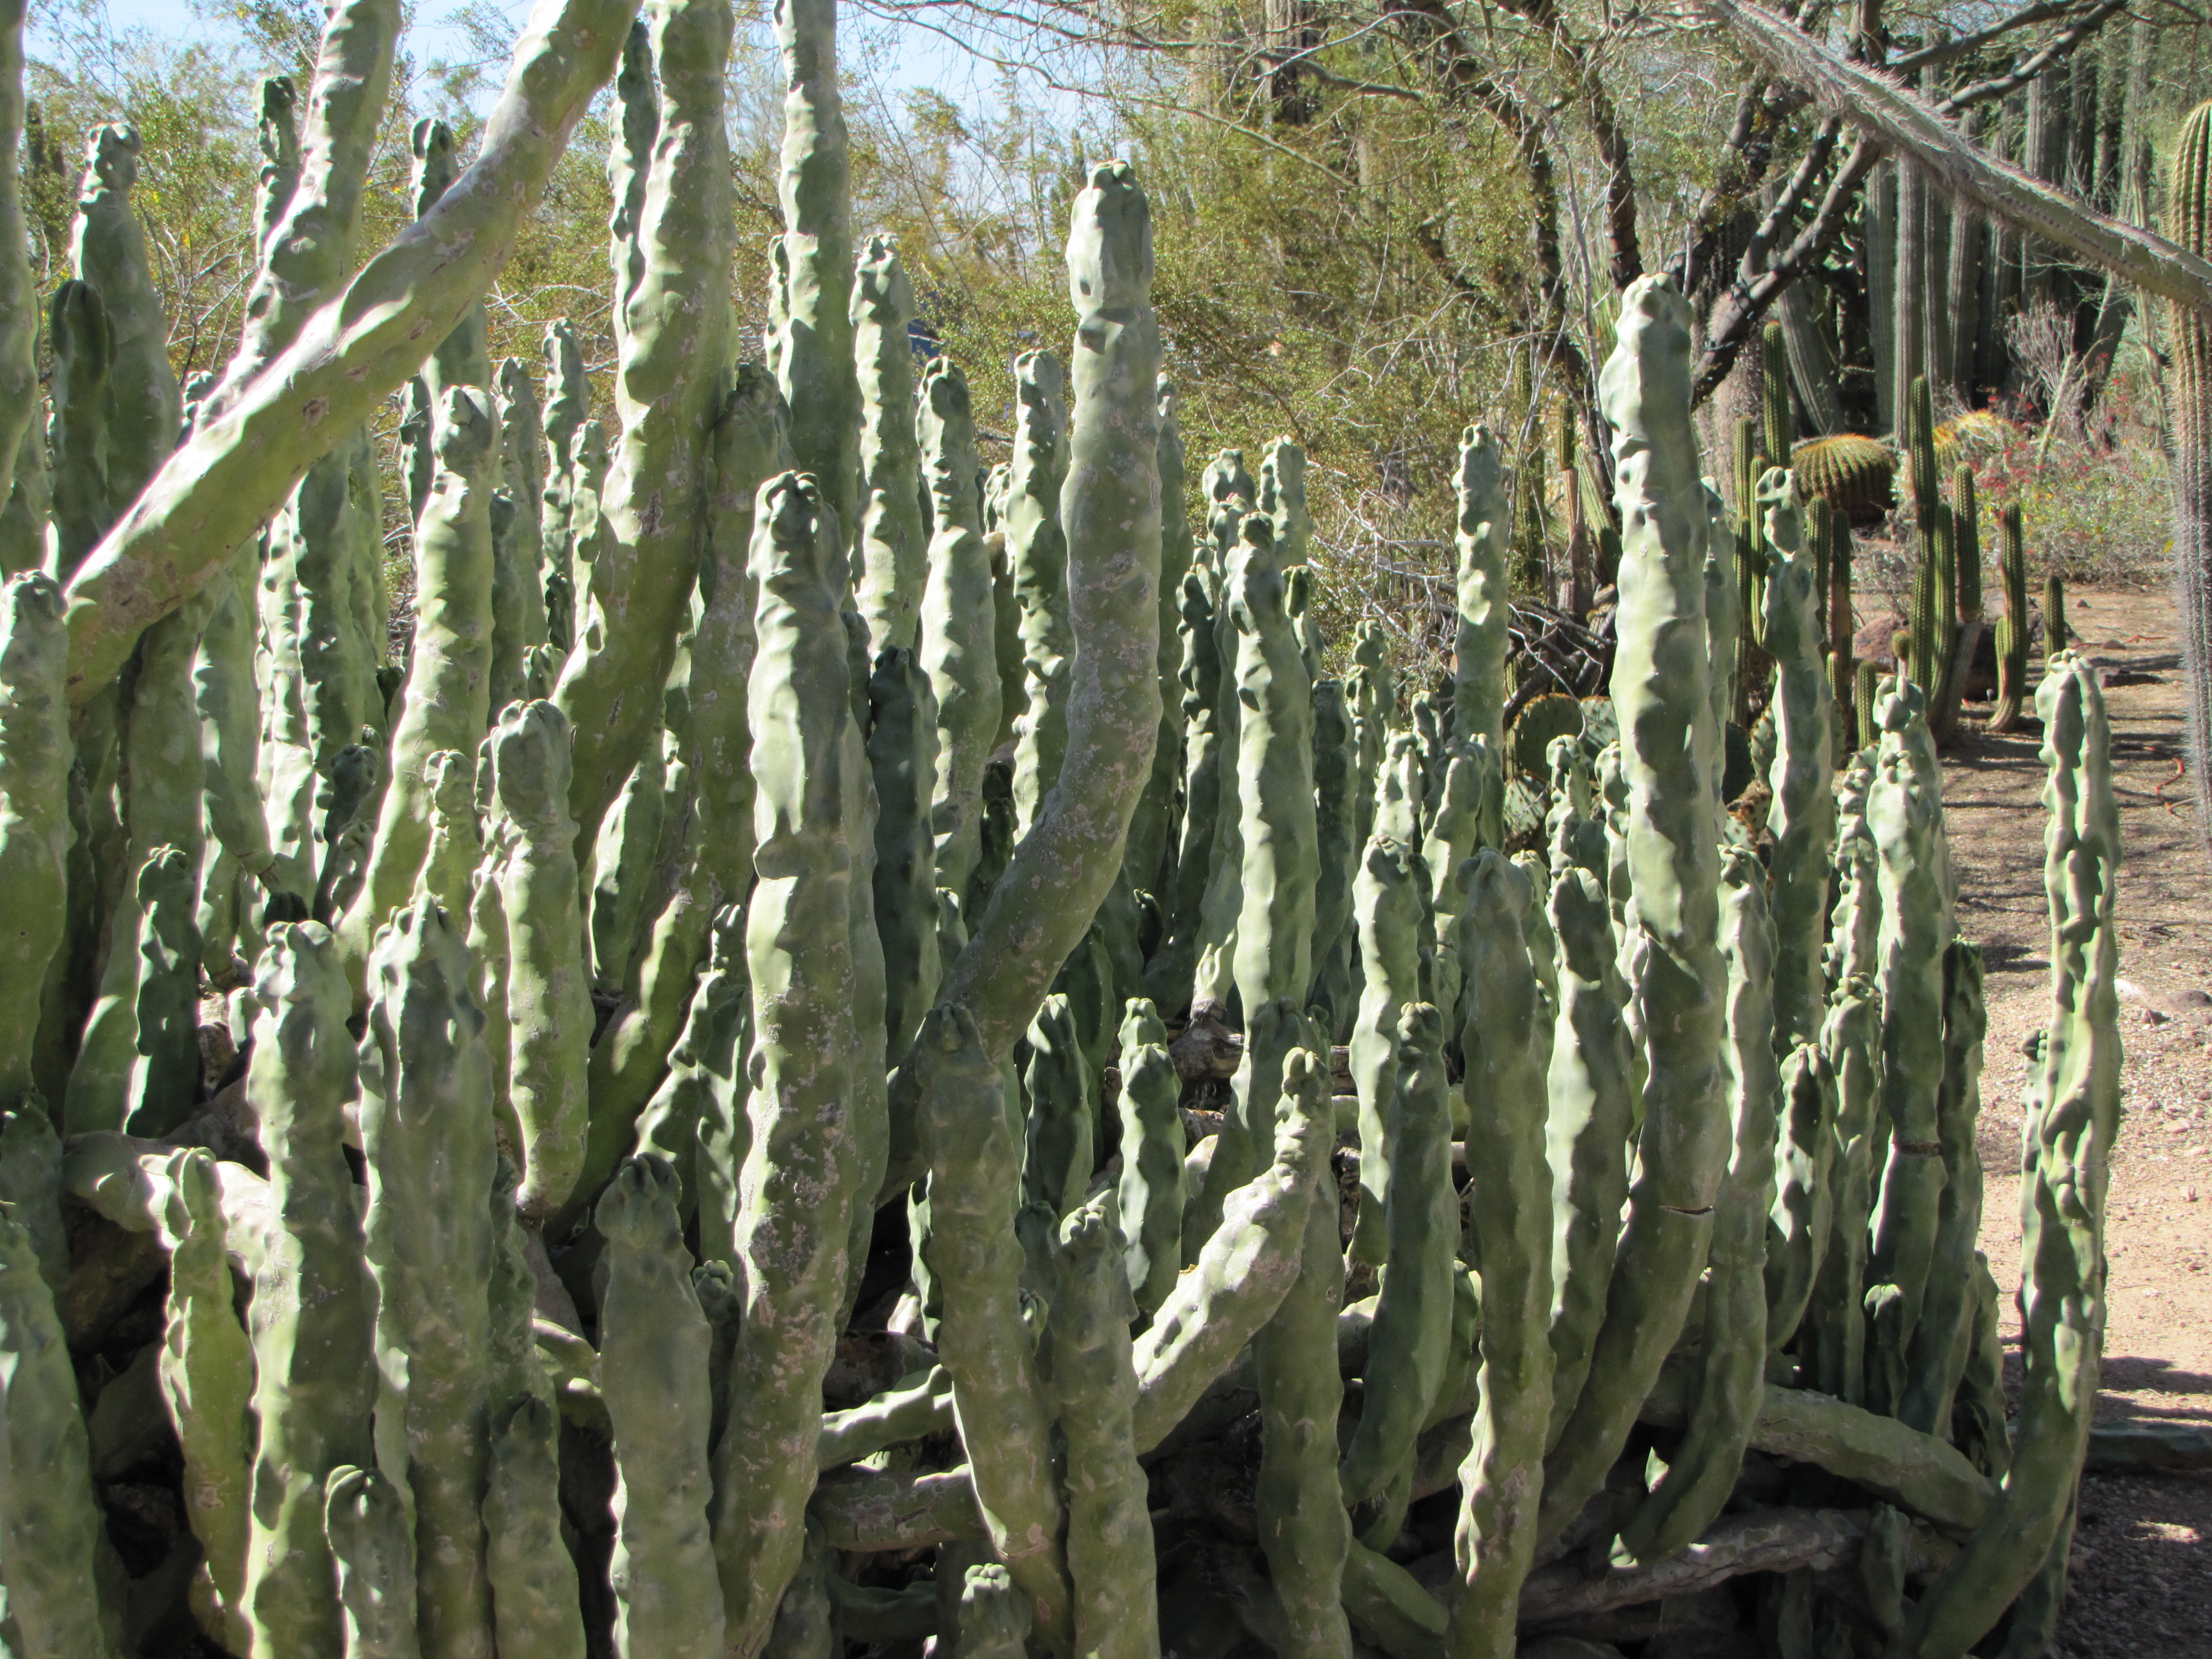 Forest of Cacti!